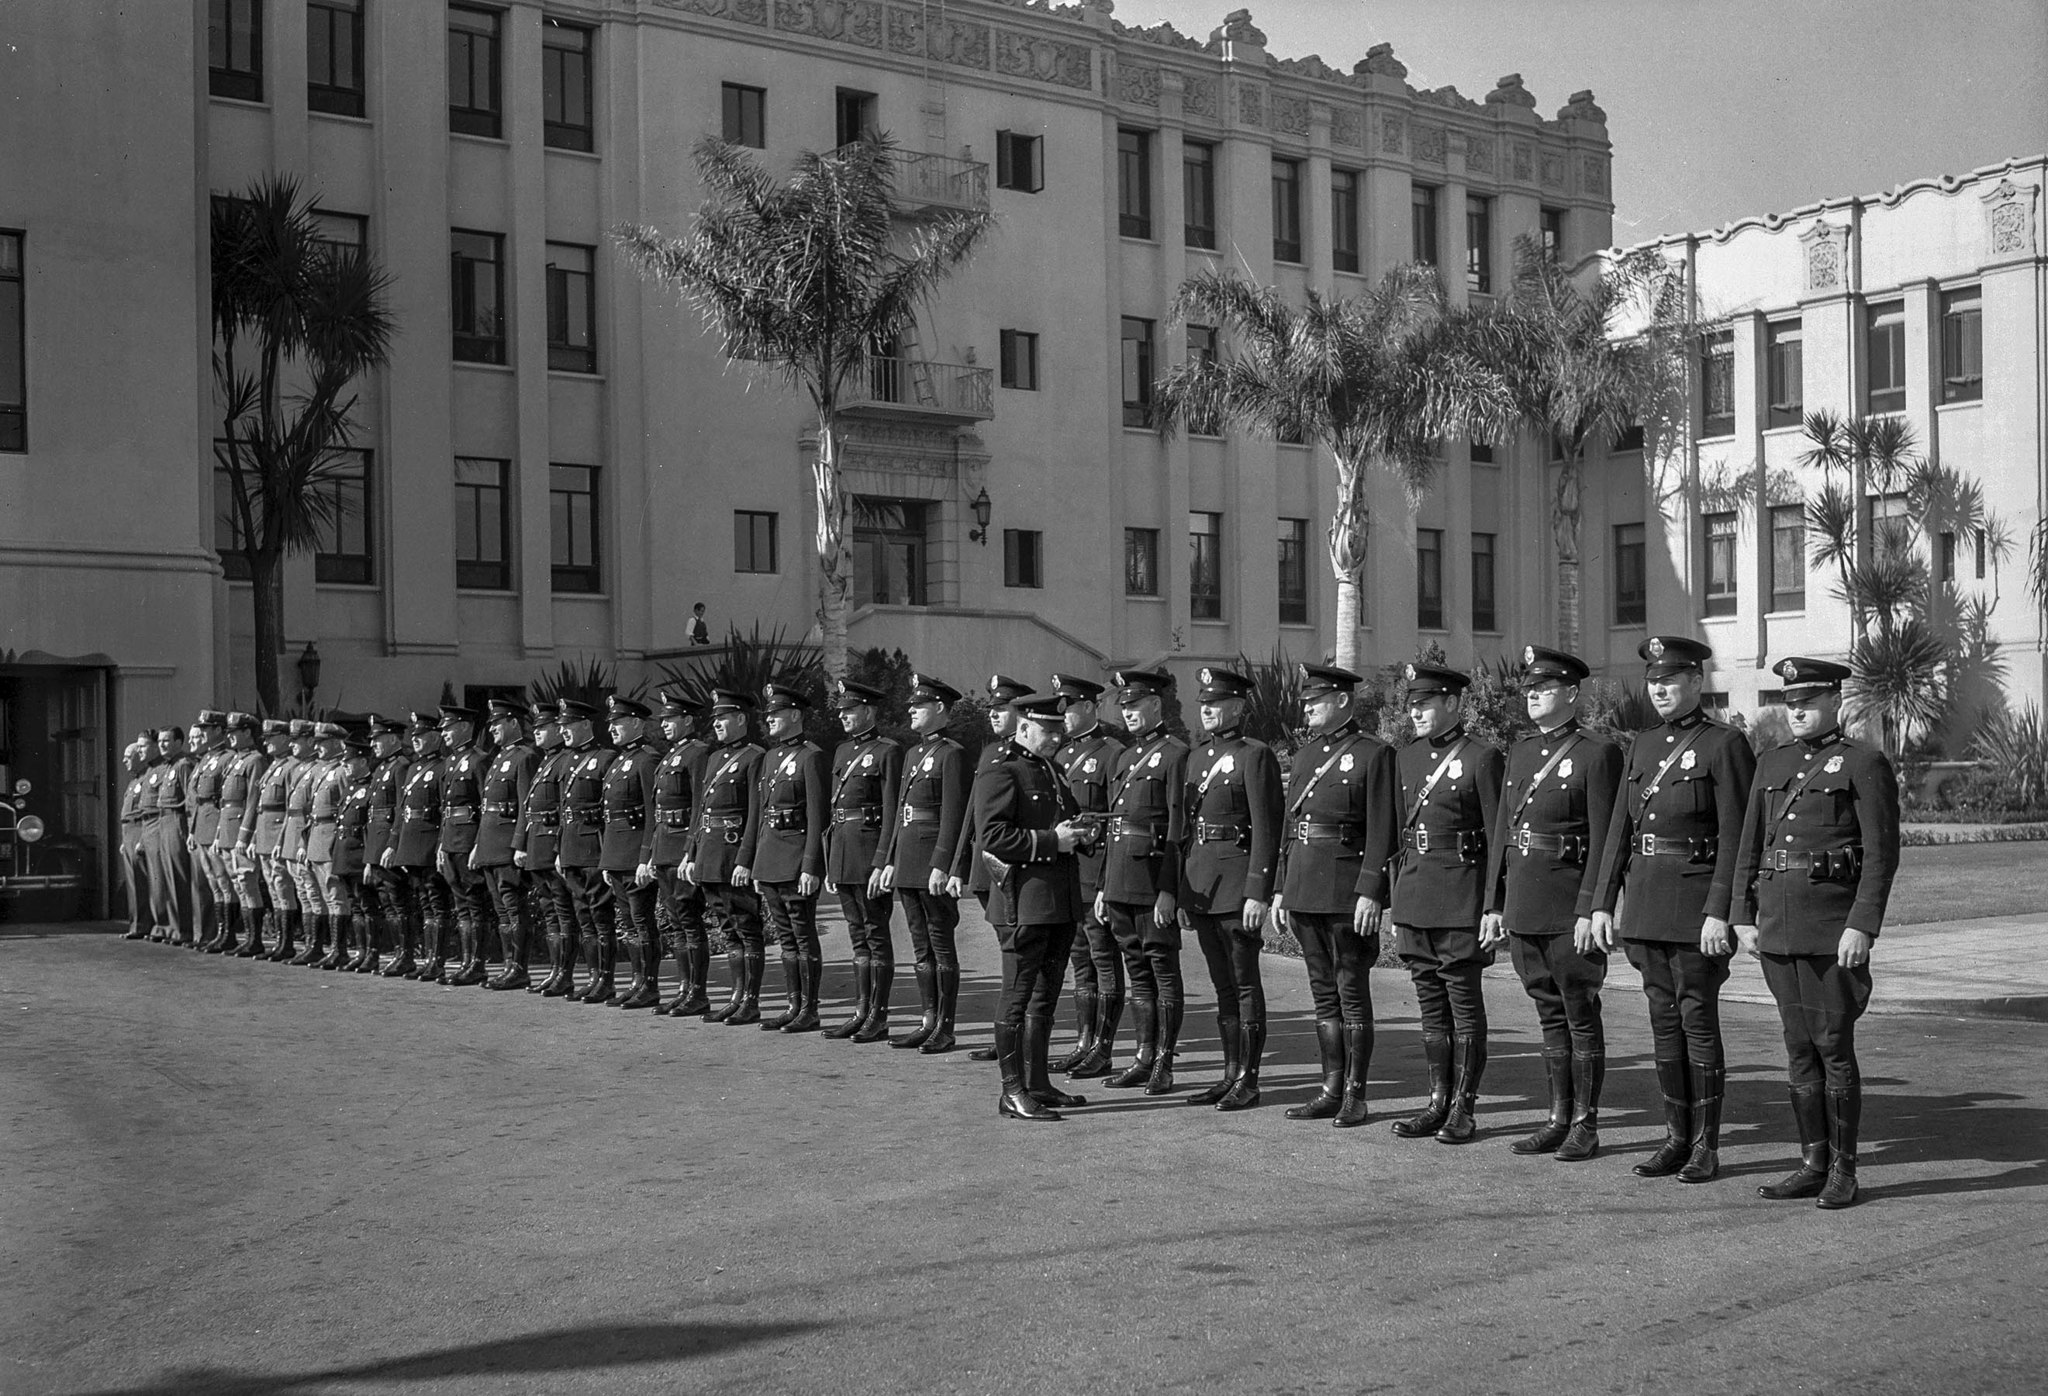 Nov. 5, 1932: Members of the Beverly Hills Police Dept. in courtyard of Beverly Hills City Hall, bei